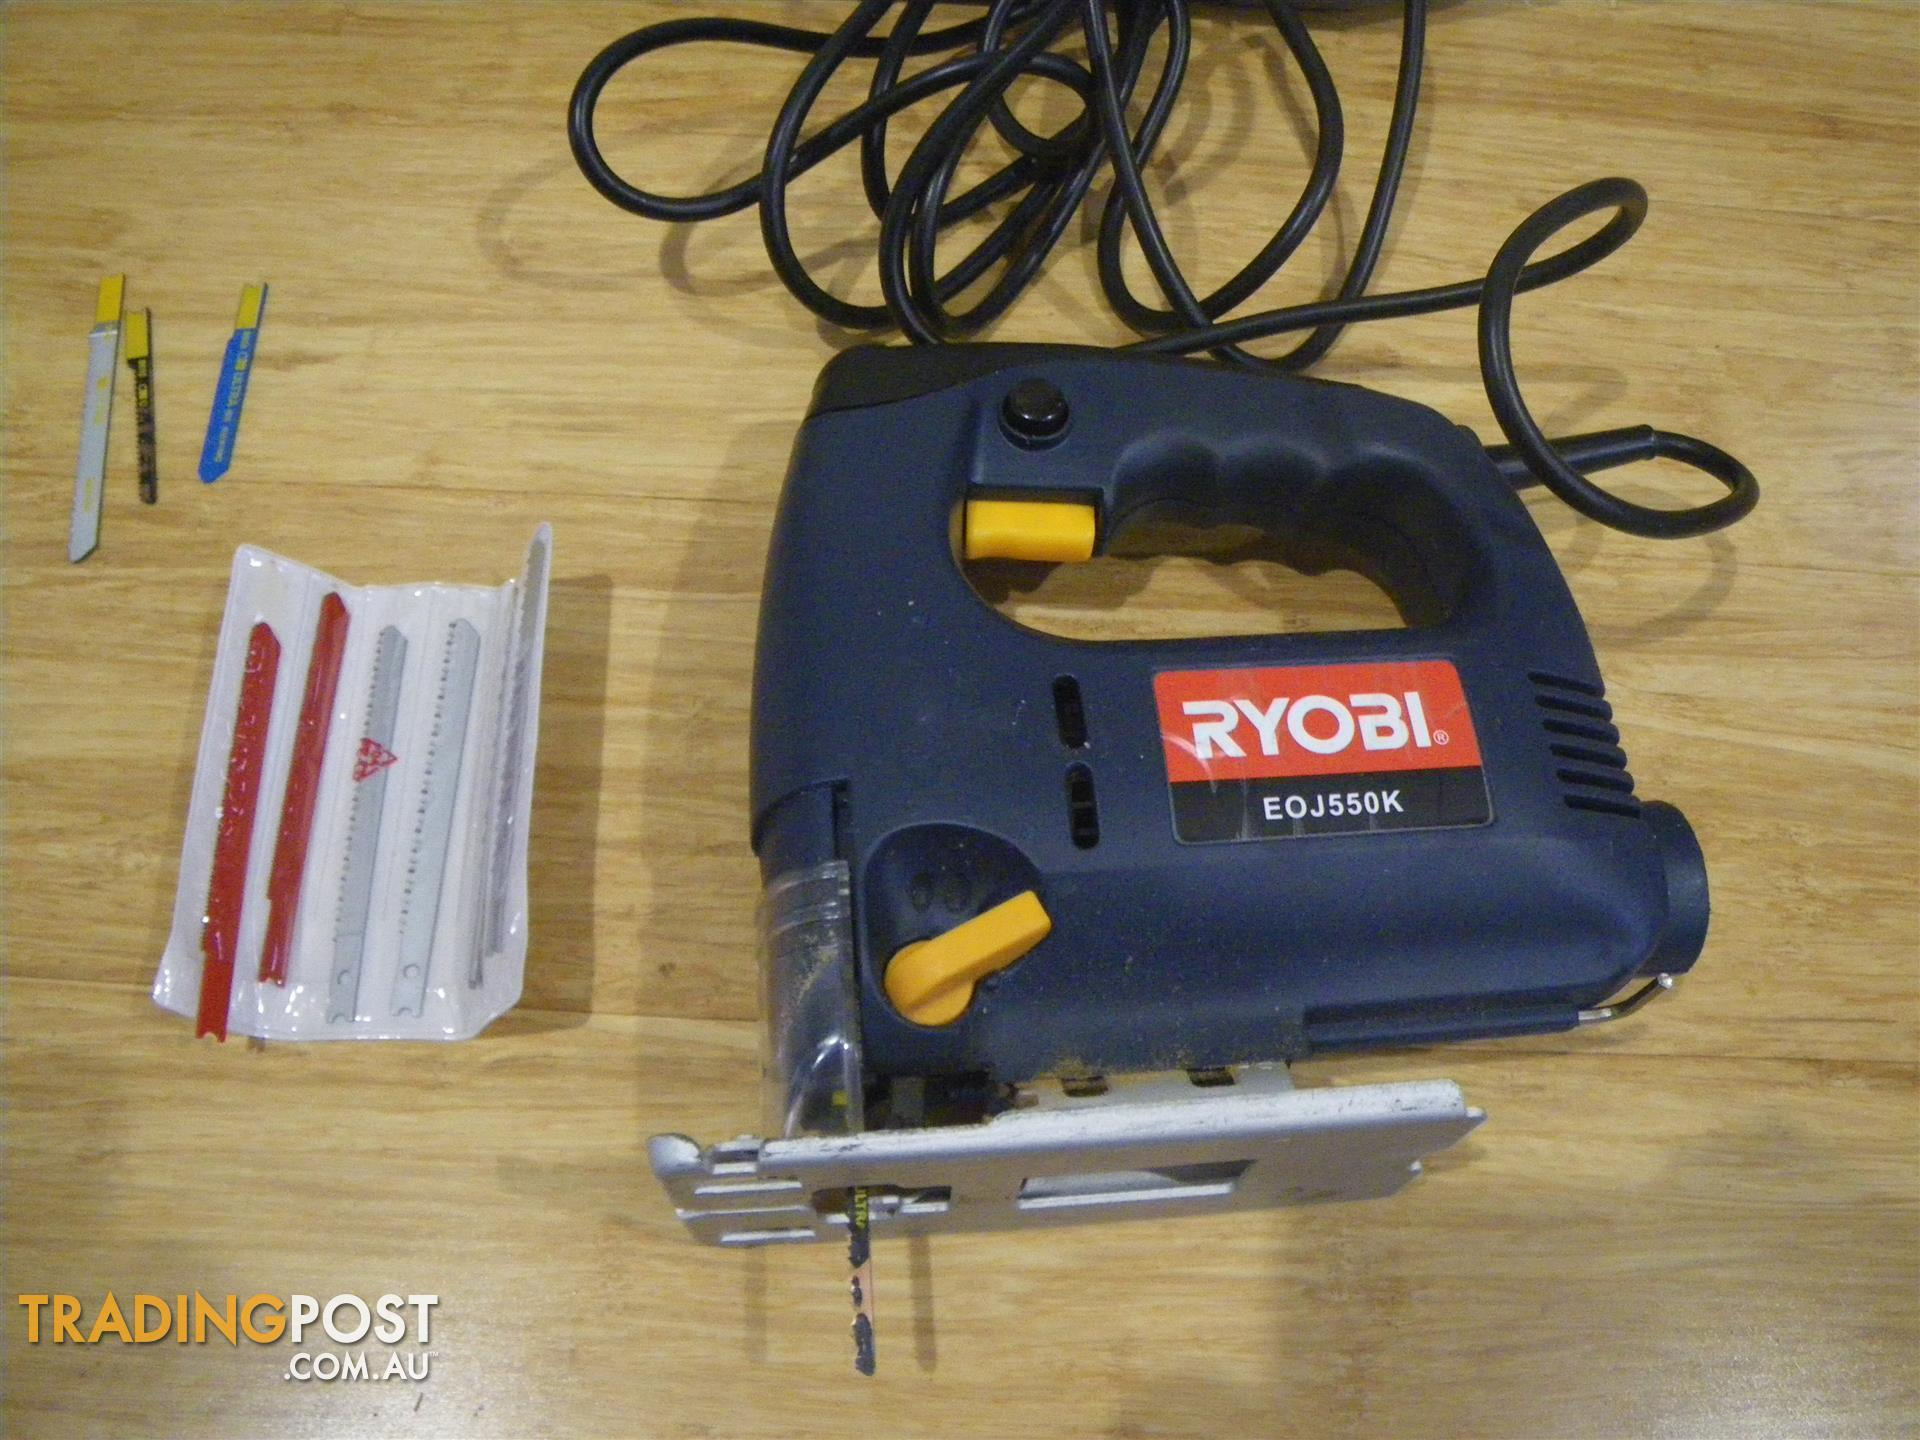 Ryobi orbital jigsaw eoj550k 550 watt corded electric reciprocating ryobi orbital jigsaw eoj550k 550 watt corded electric reciprocating saw for sale in malvern east vic ryobi orbital jigsaw eoj550k 550 watt corded electric keyboard keysfo Gallery